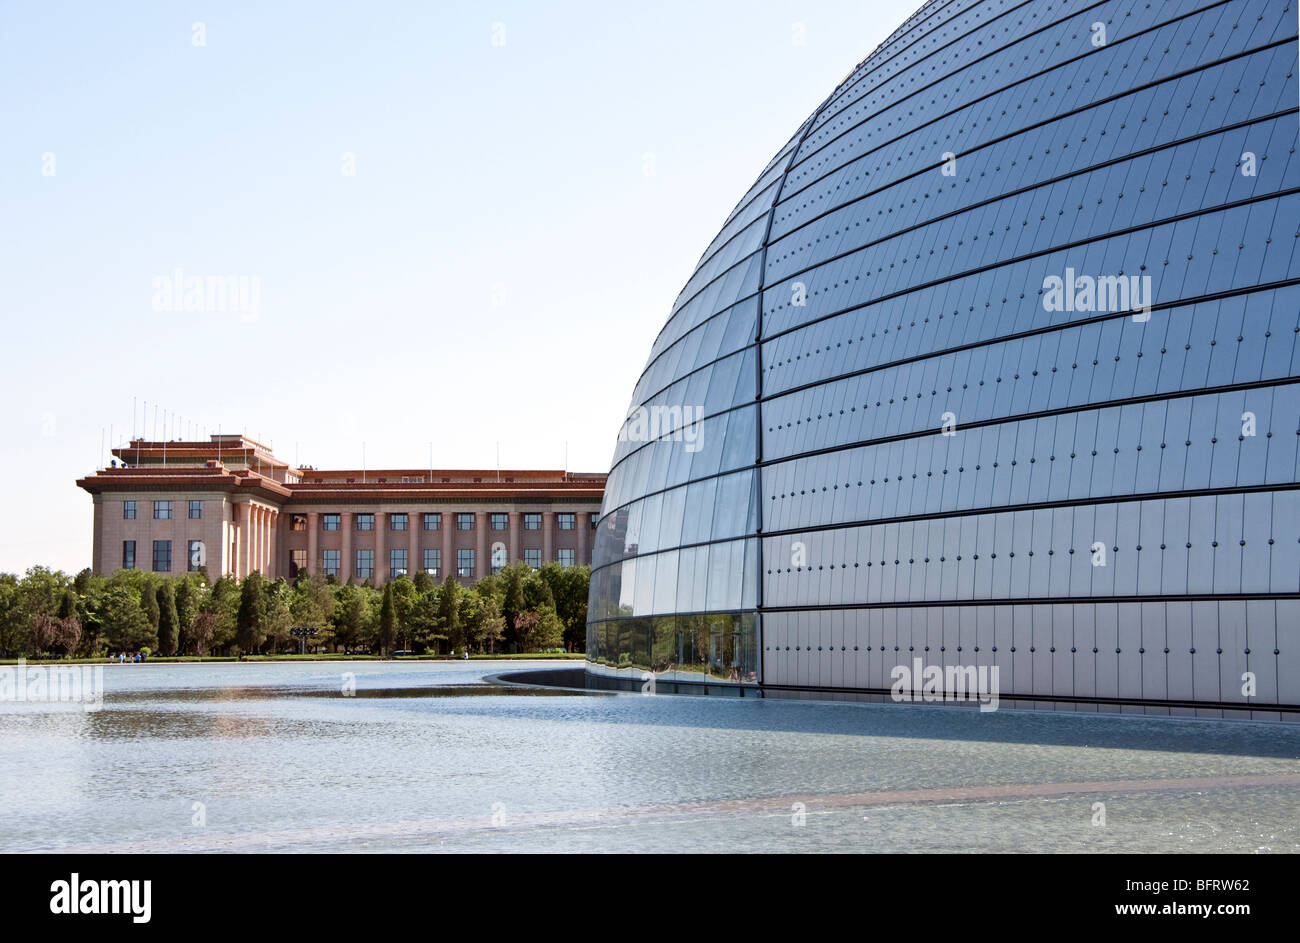 China's National Centre for the Performing Arts, National Grand Theater, adjacent to the Great Hall of the People - Stock Image